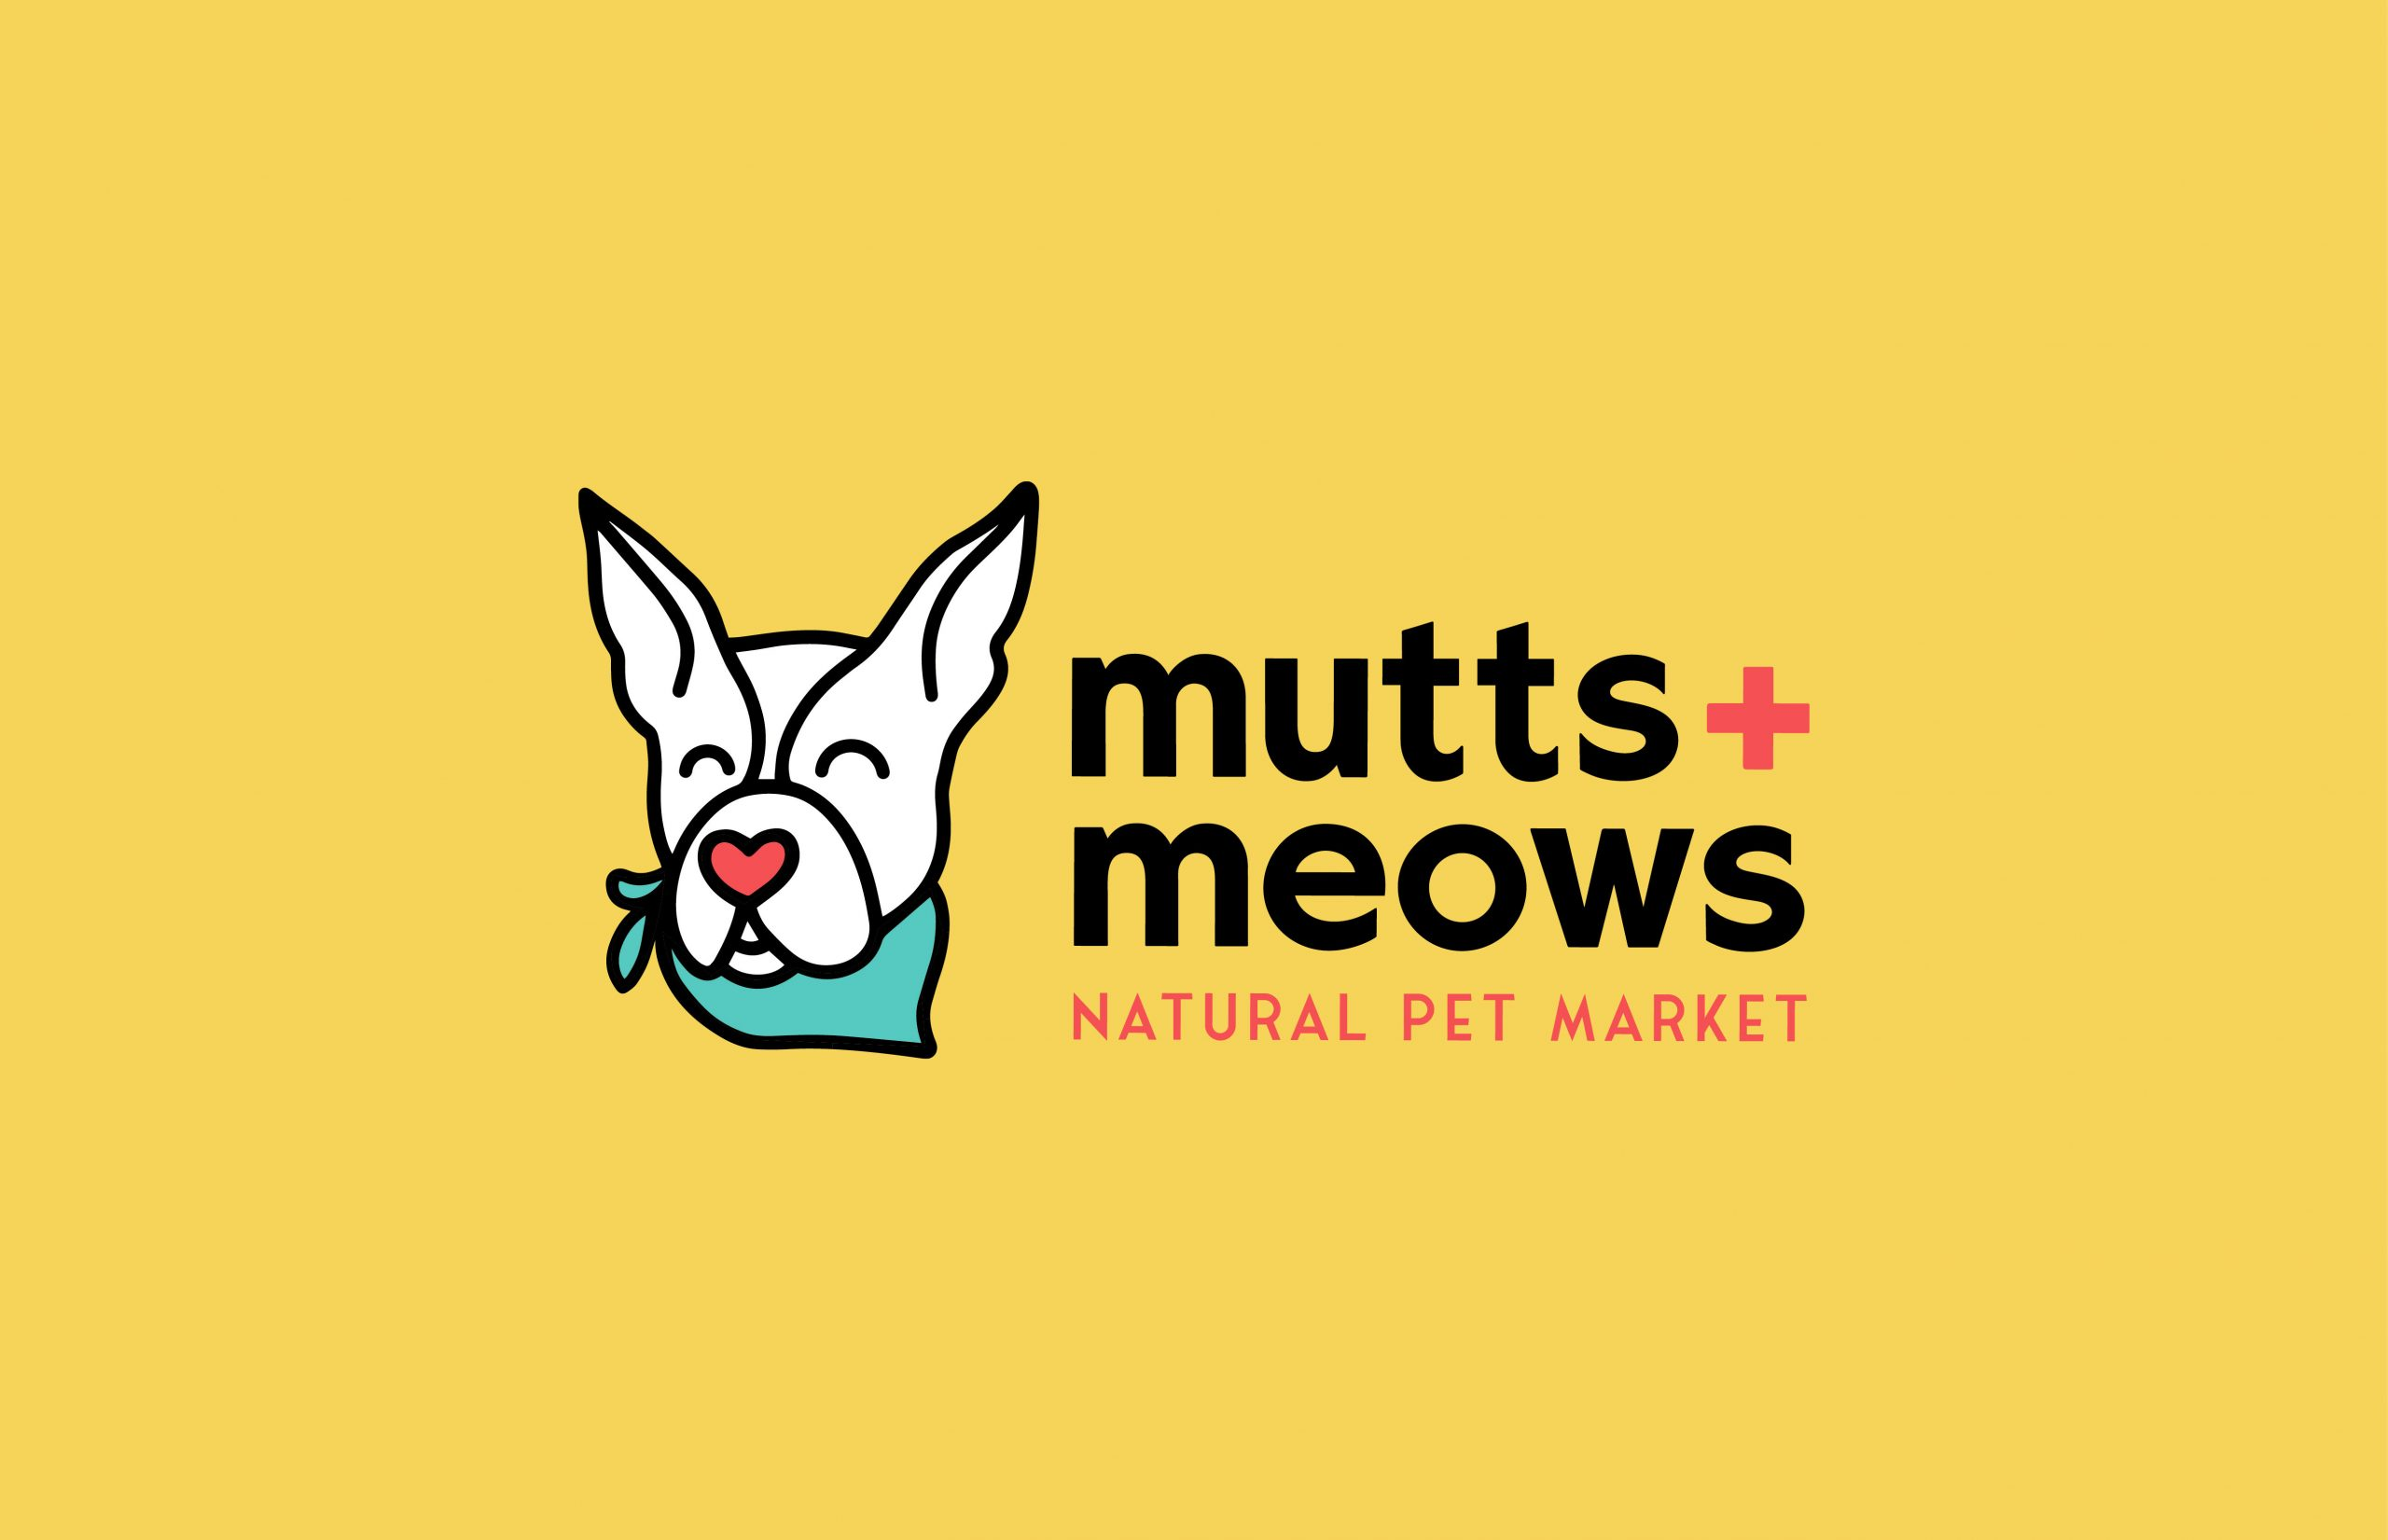 Mutts and Meows Natural Pet Market logo